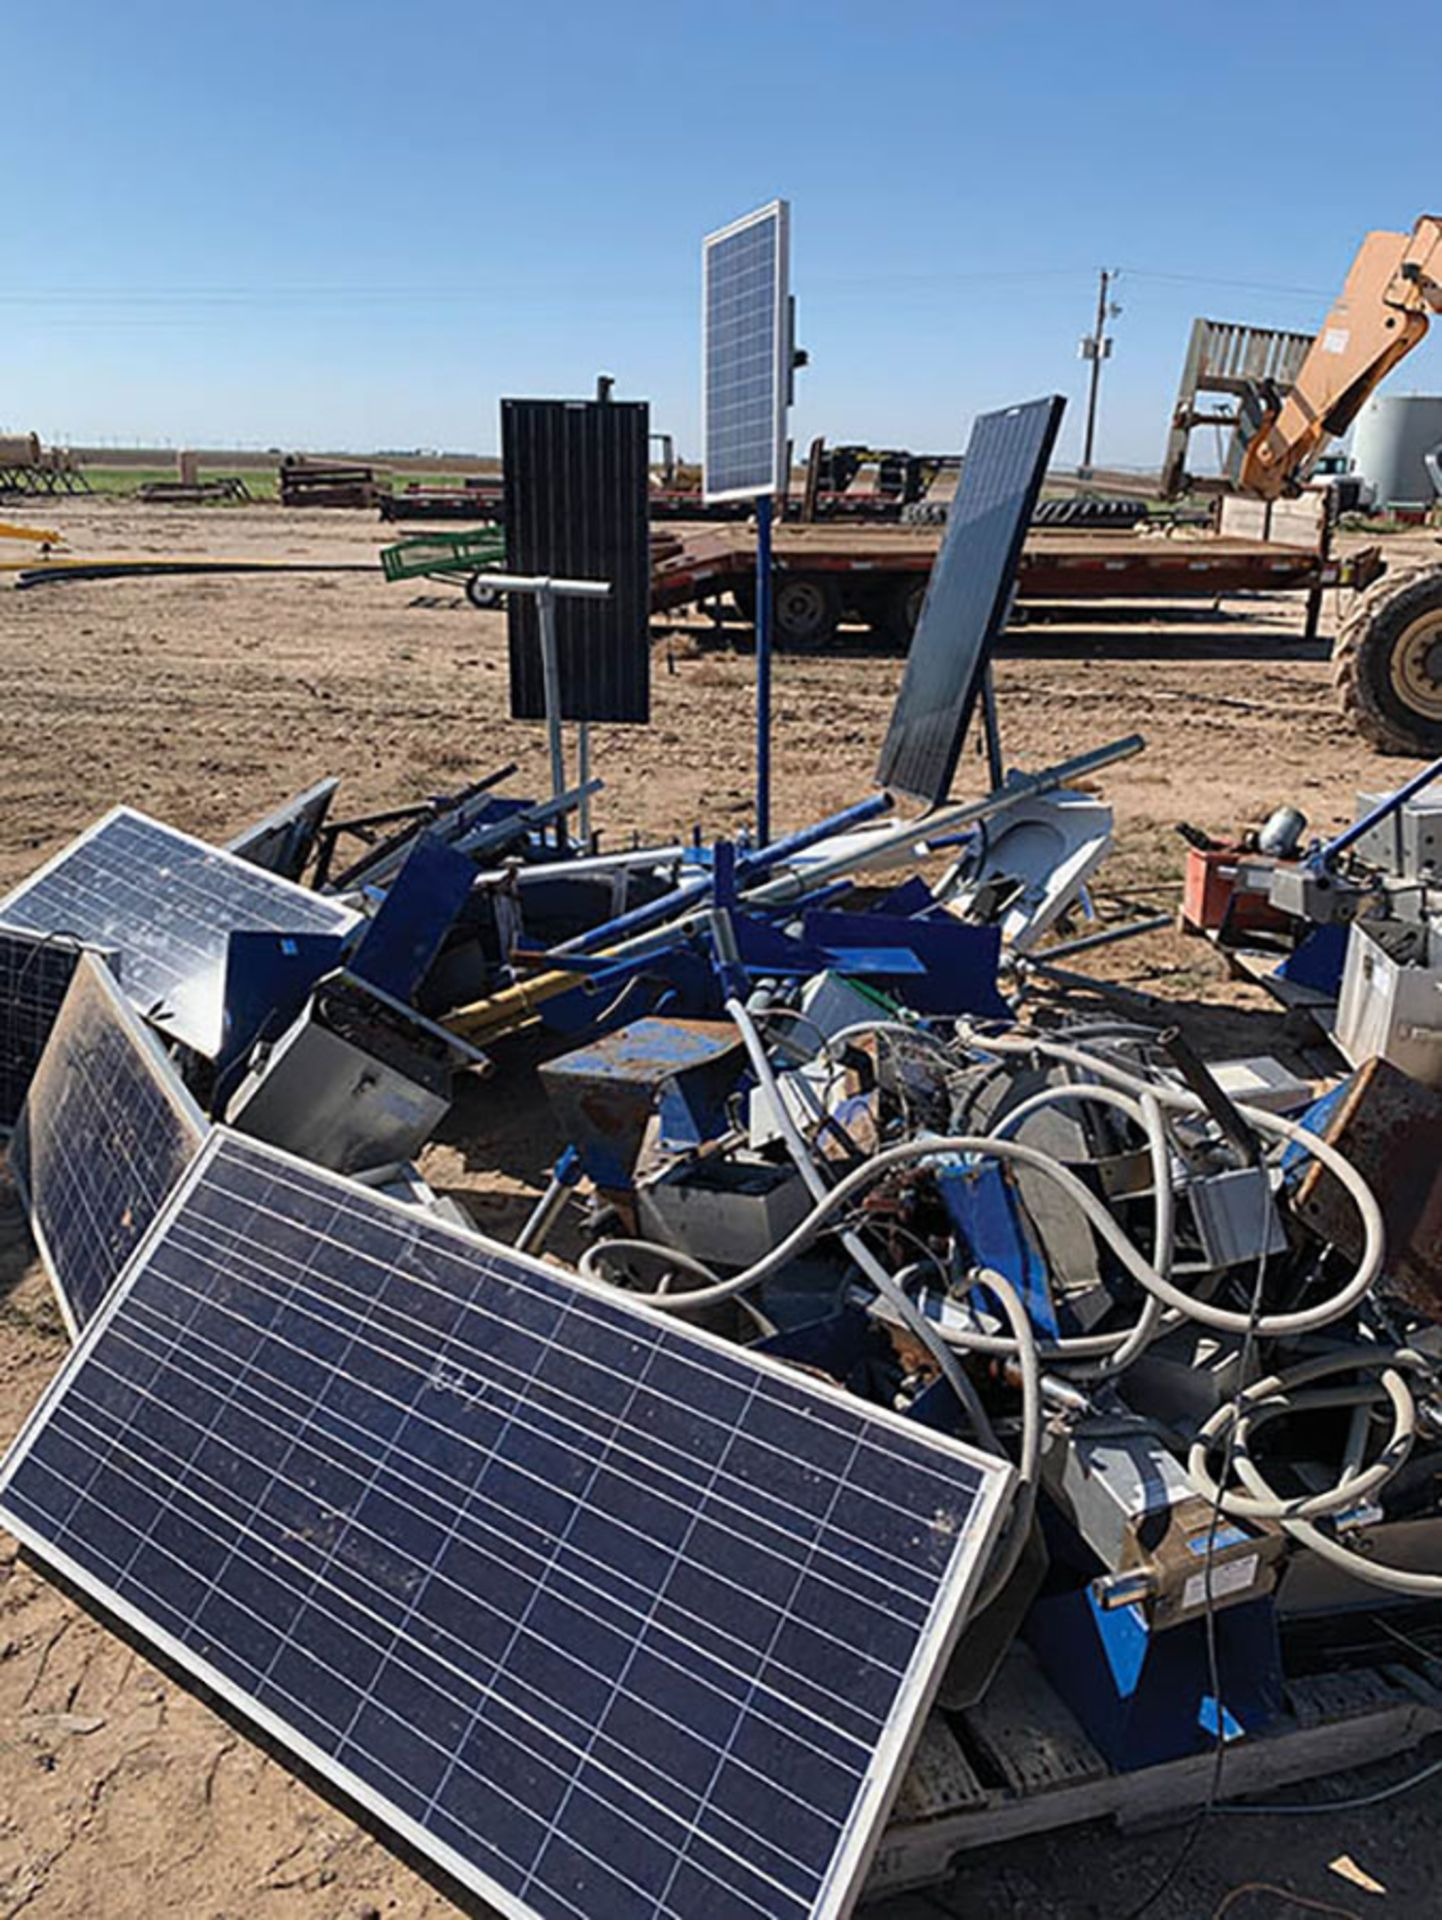 ASSORTED SOLAR PANEL PARTS AND ACCESSORIES - Image 2 of 2